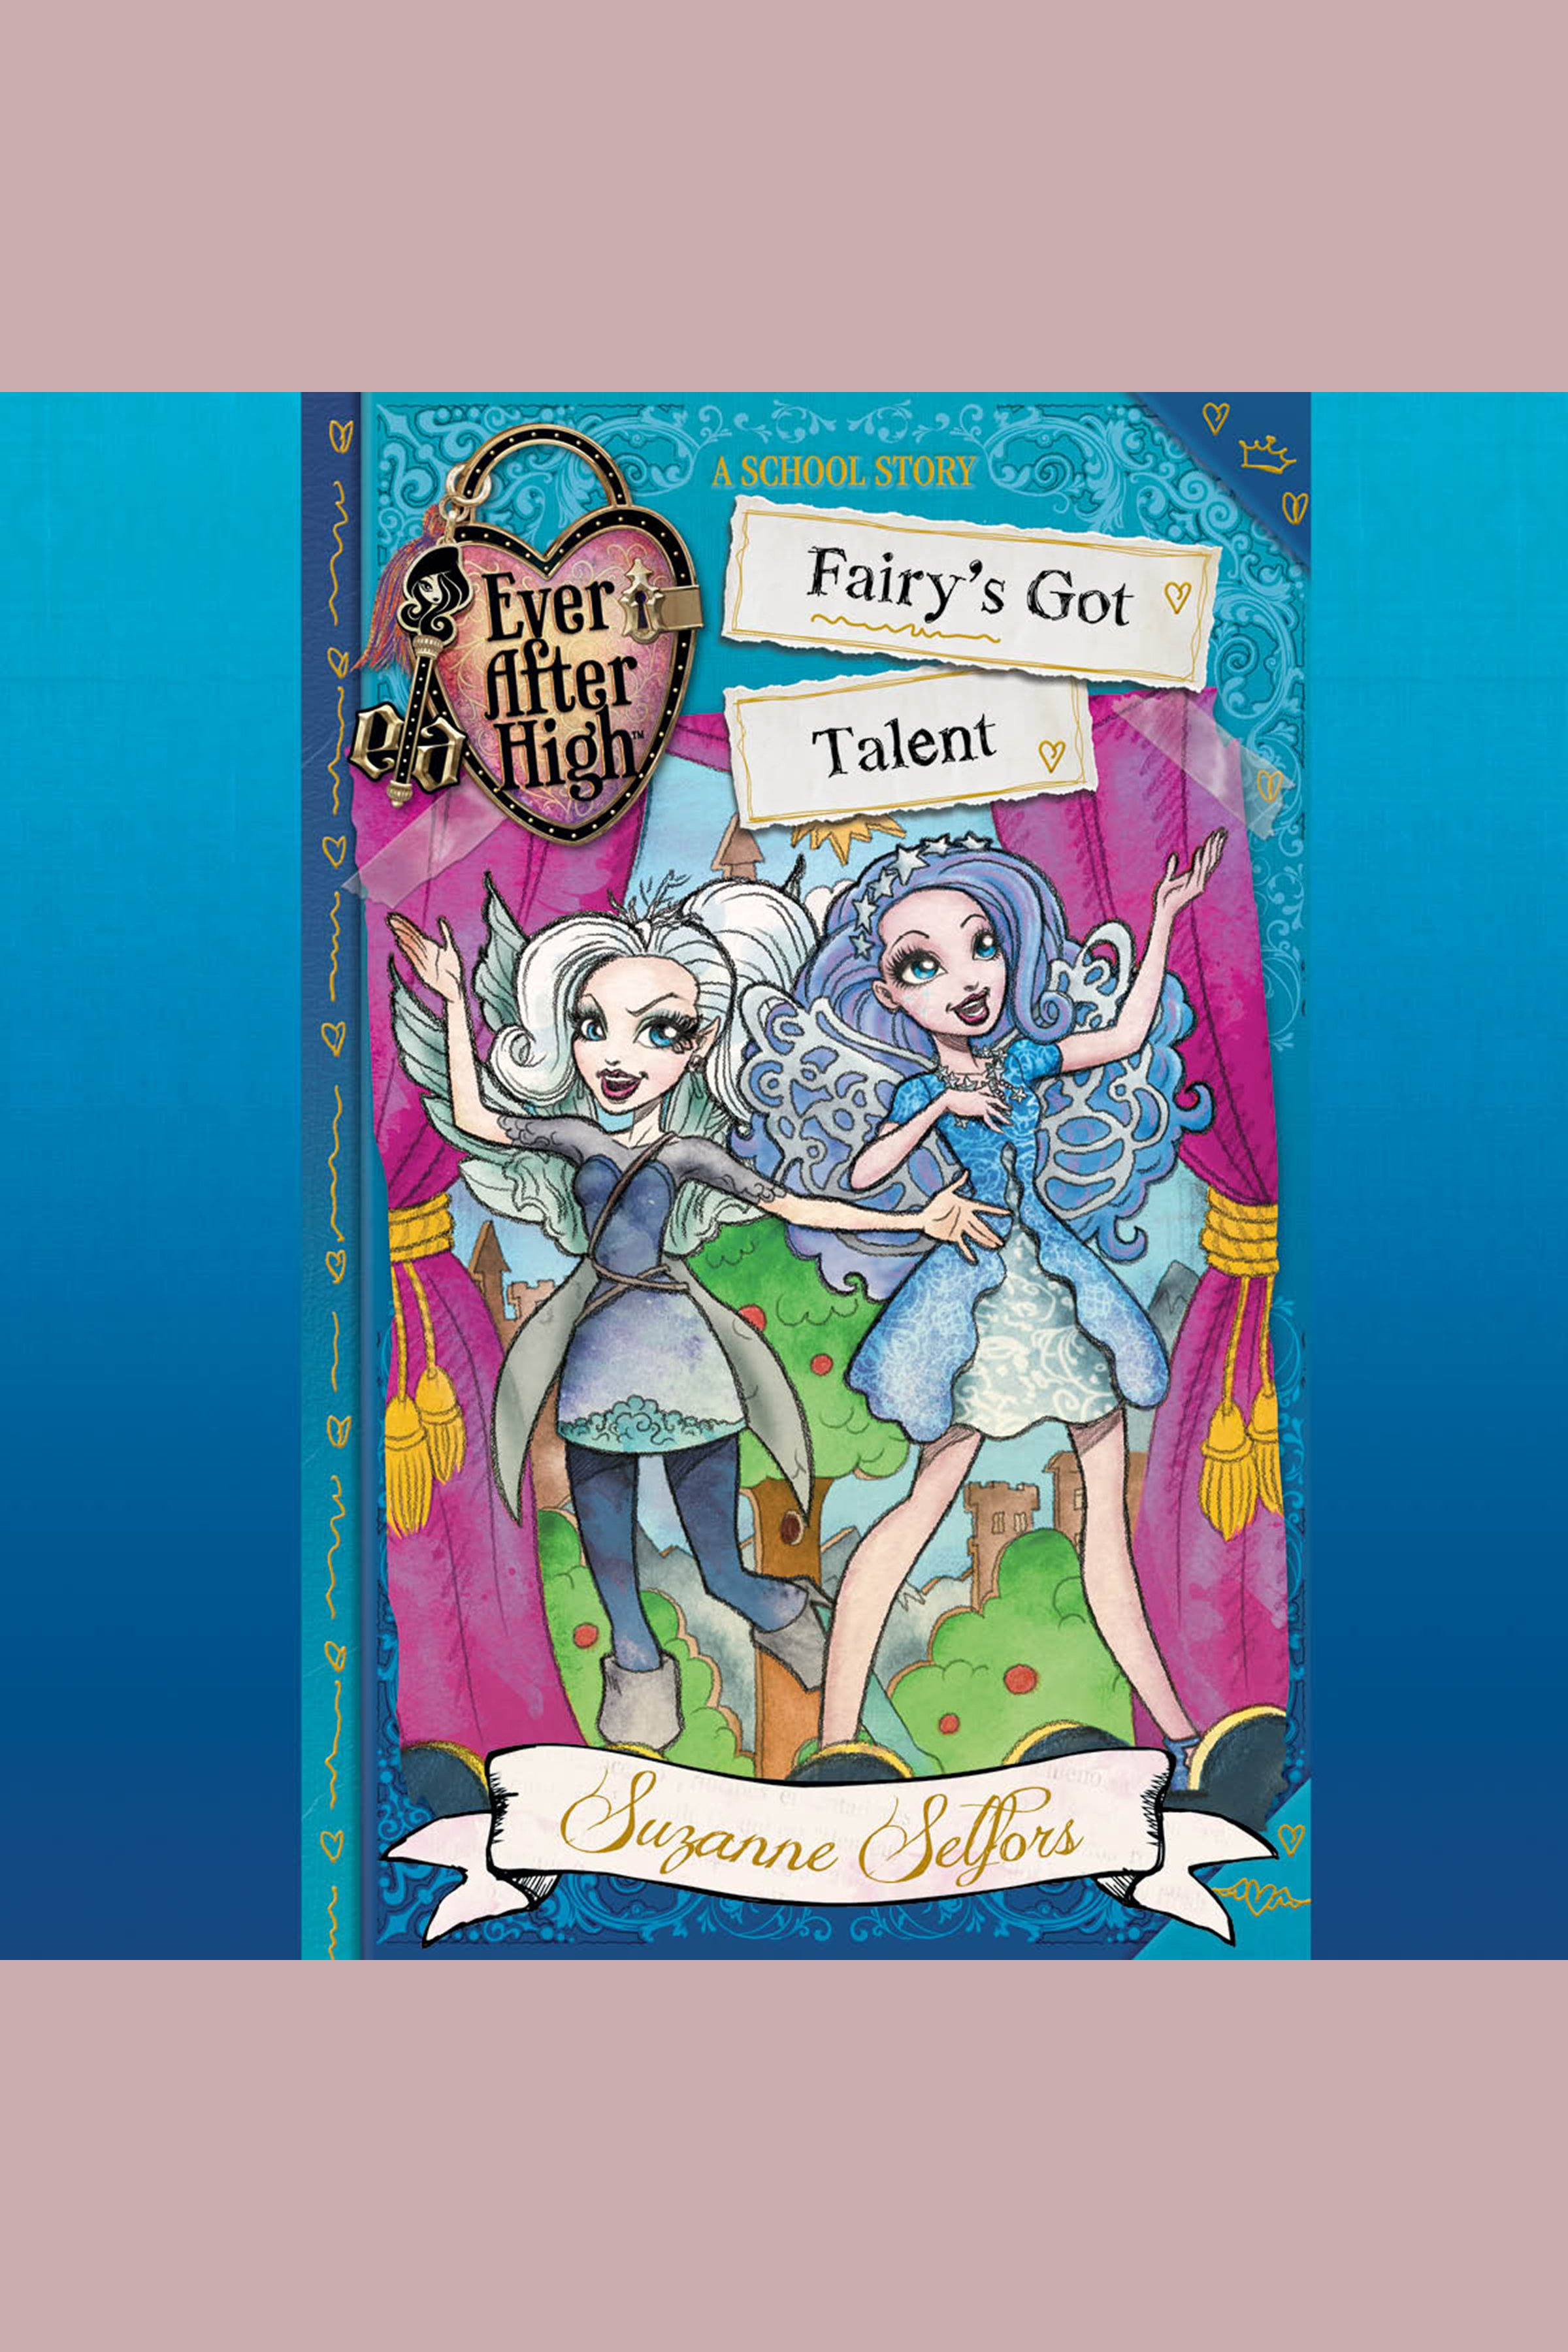 Fairy's got talent cover image